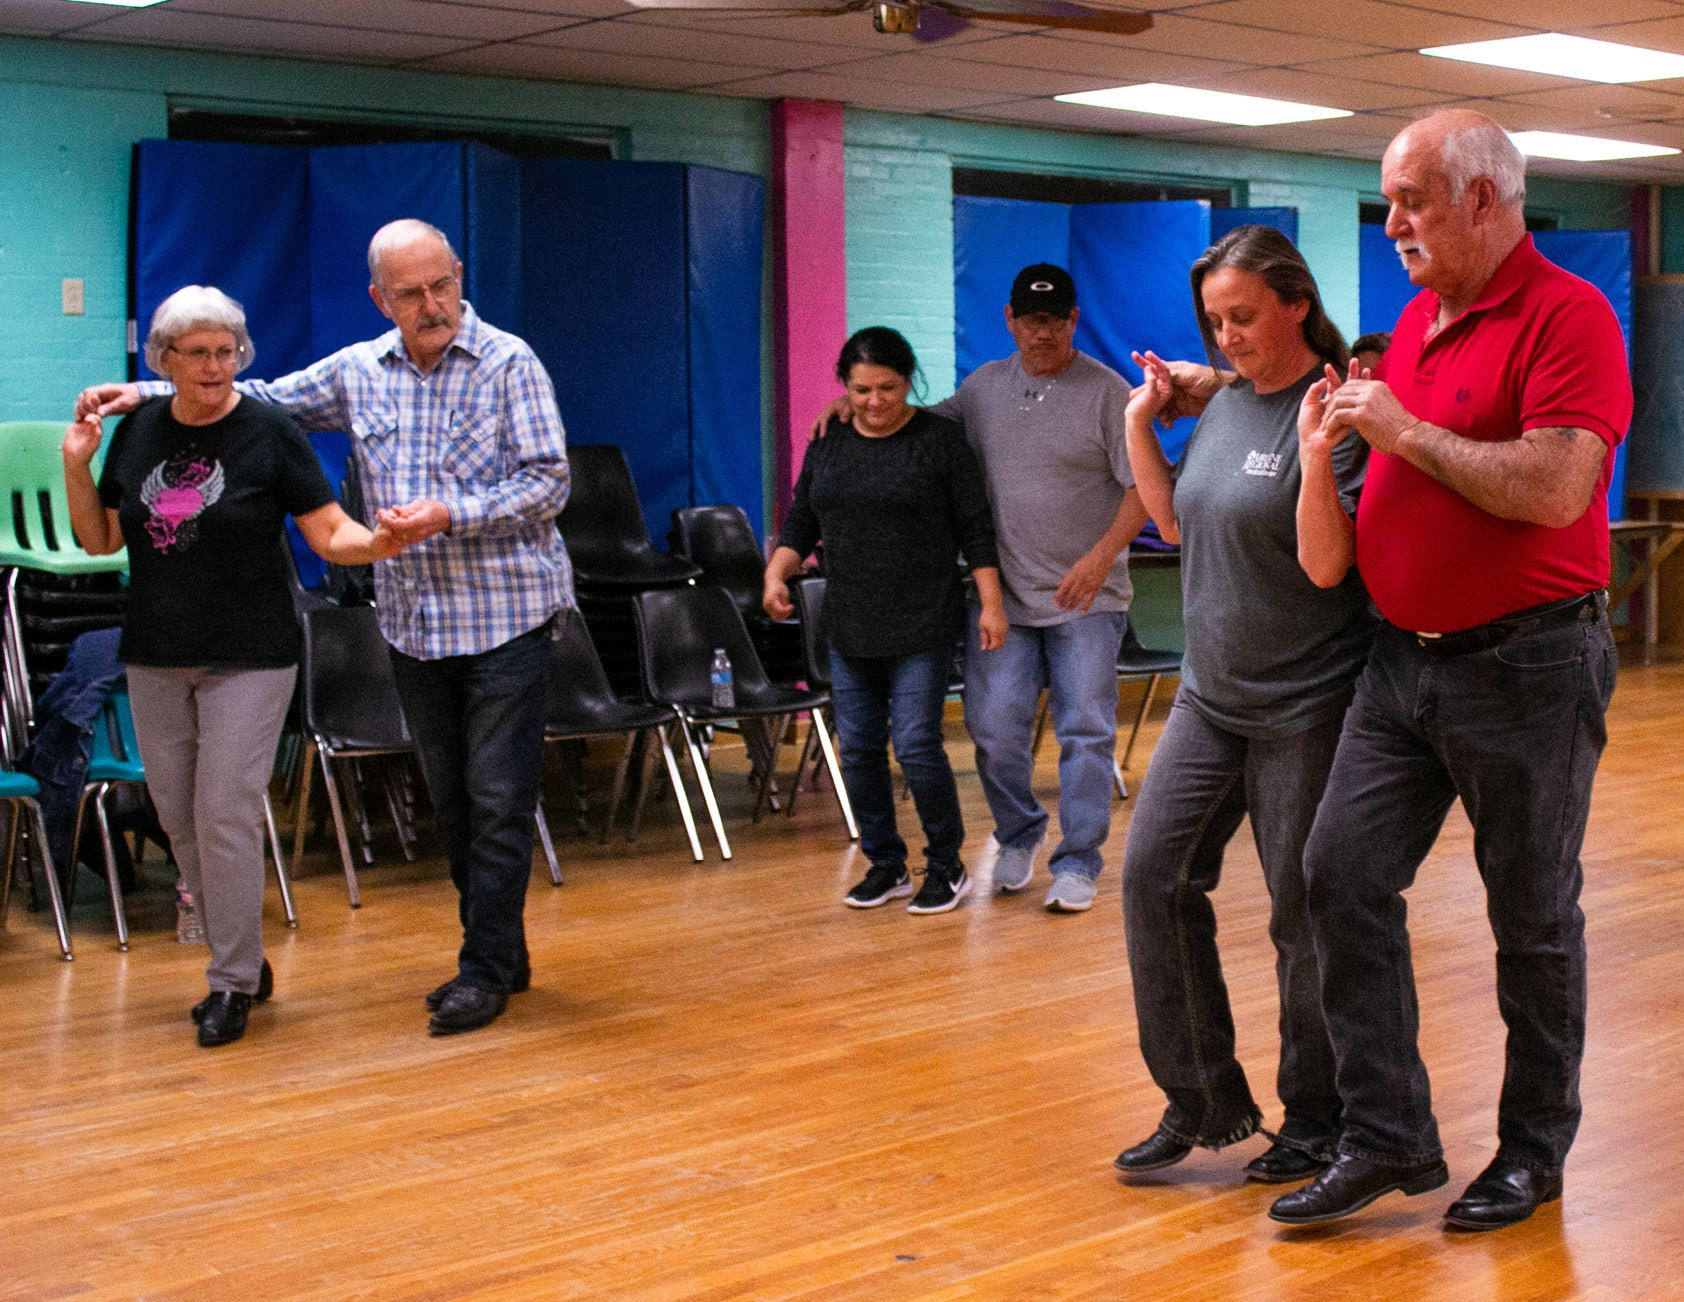 Country Western Dance Class in Abilene Texas